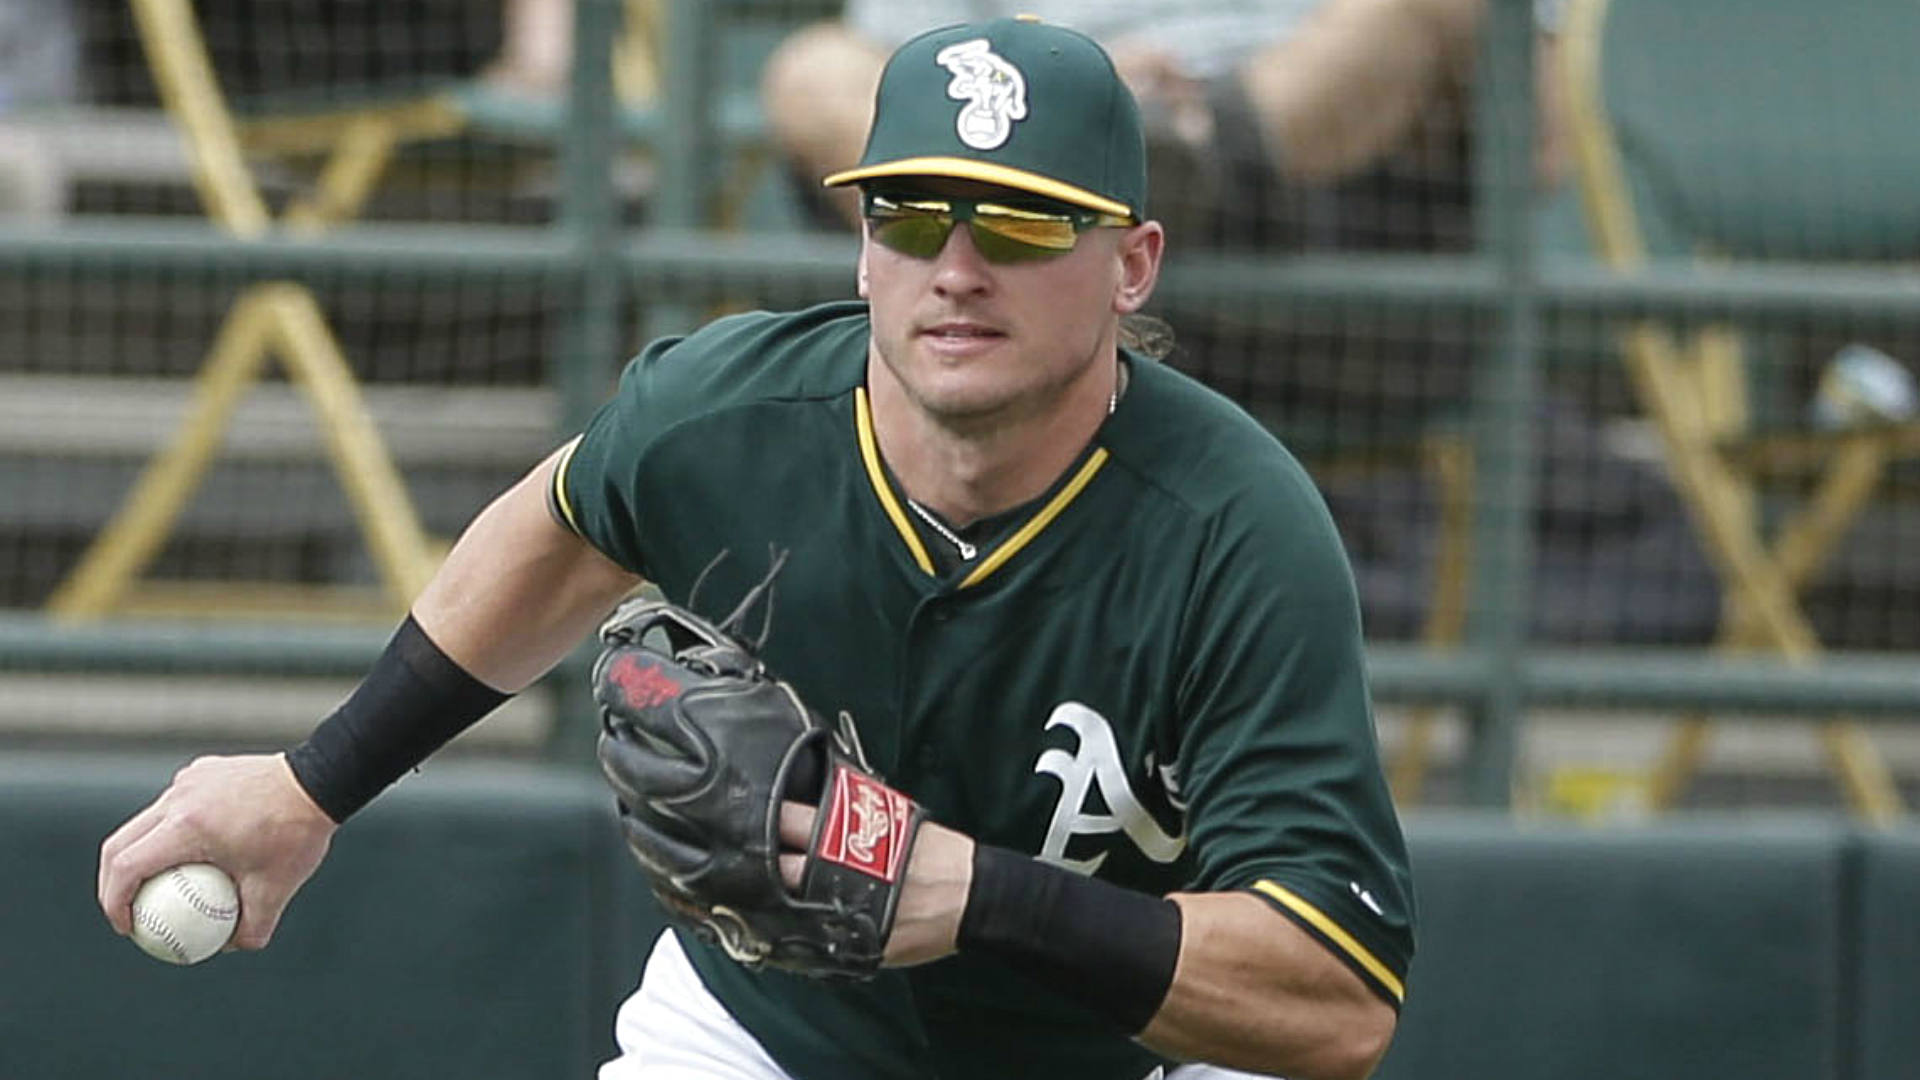 3B Rankings: Donaldson, Sandoval move opposite ways